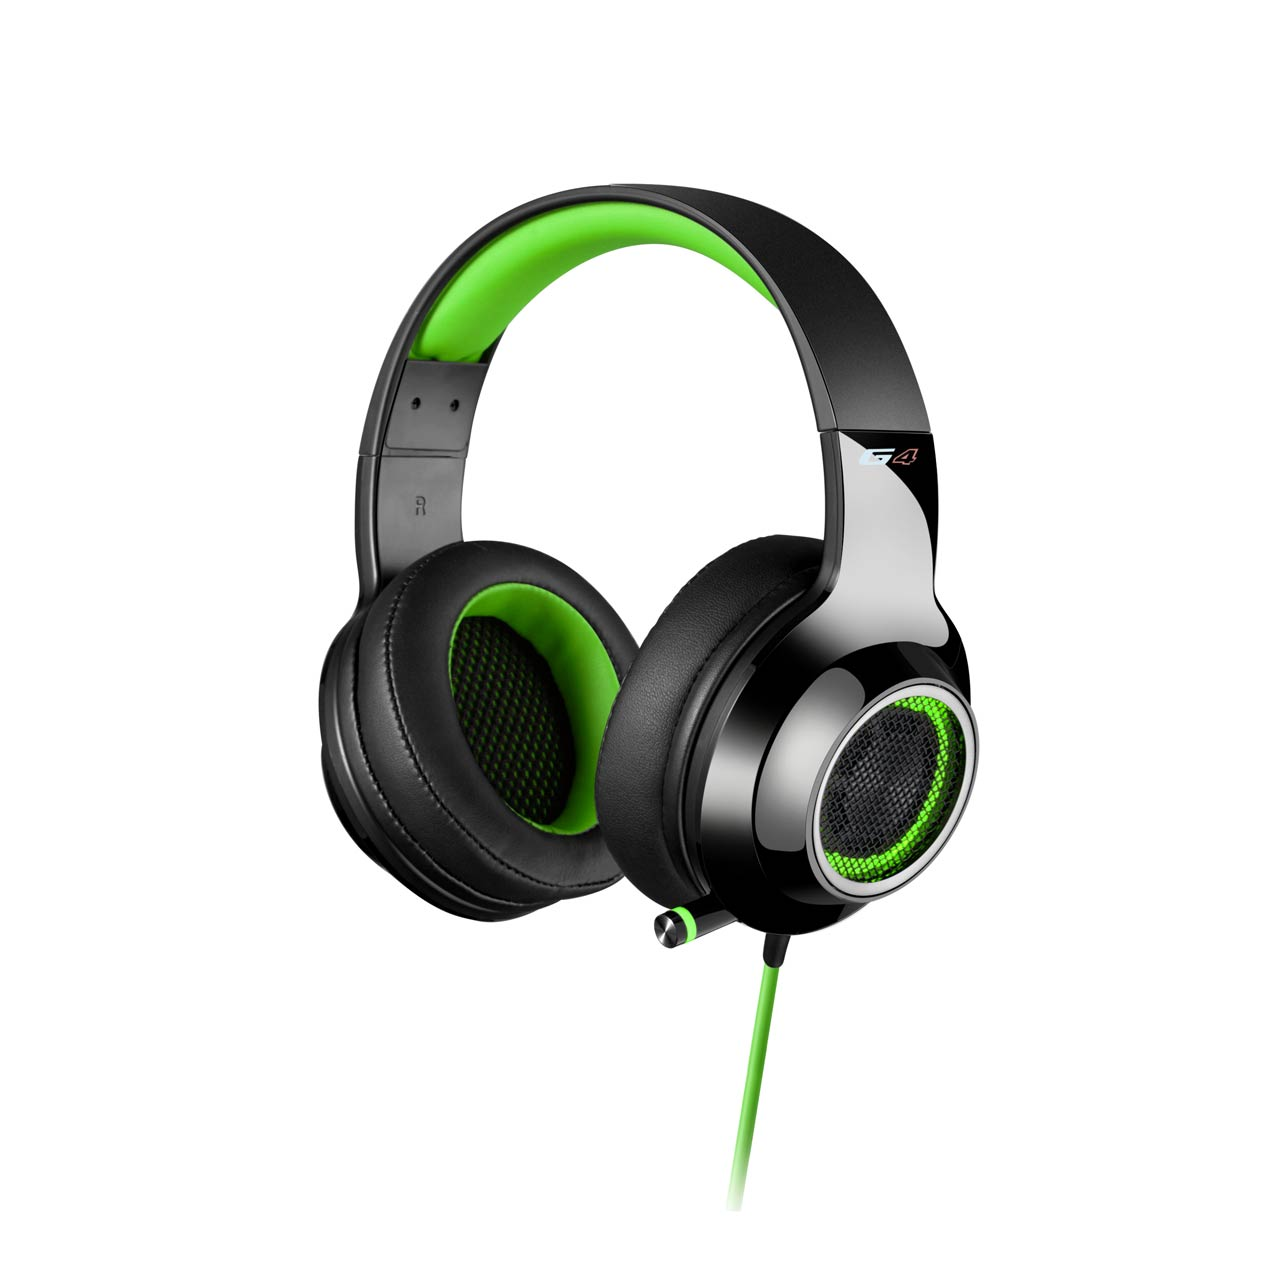 Edifier, V4, (G4), 7.1, Virtual, Surround, Sound, USB, Gaming, Headset, Green, -, V7.1, Surround, Sound/, Retractable, Mic/LED, Lights, Me,